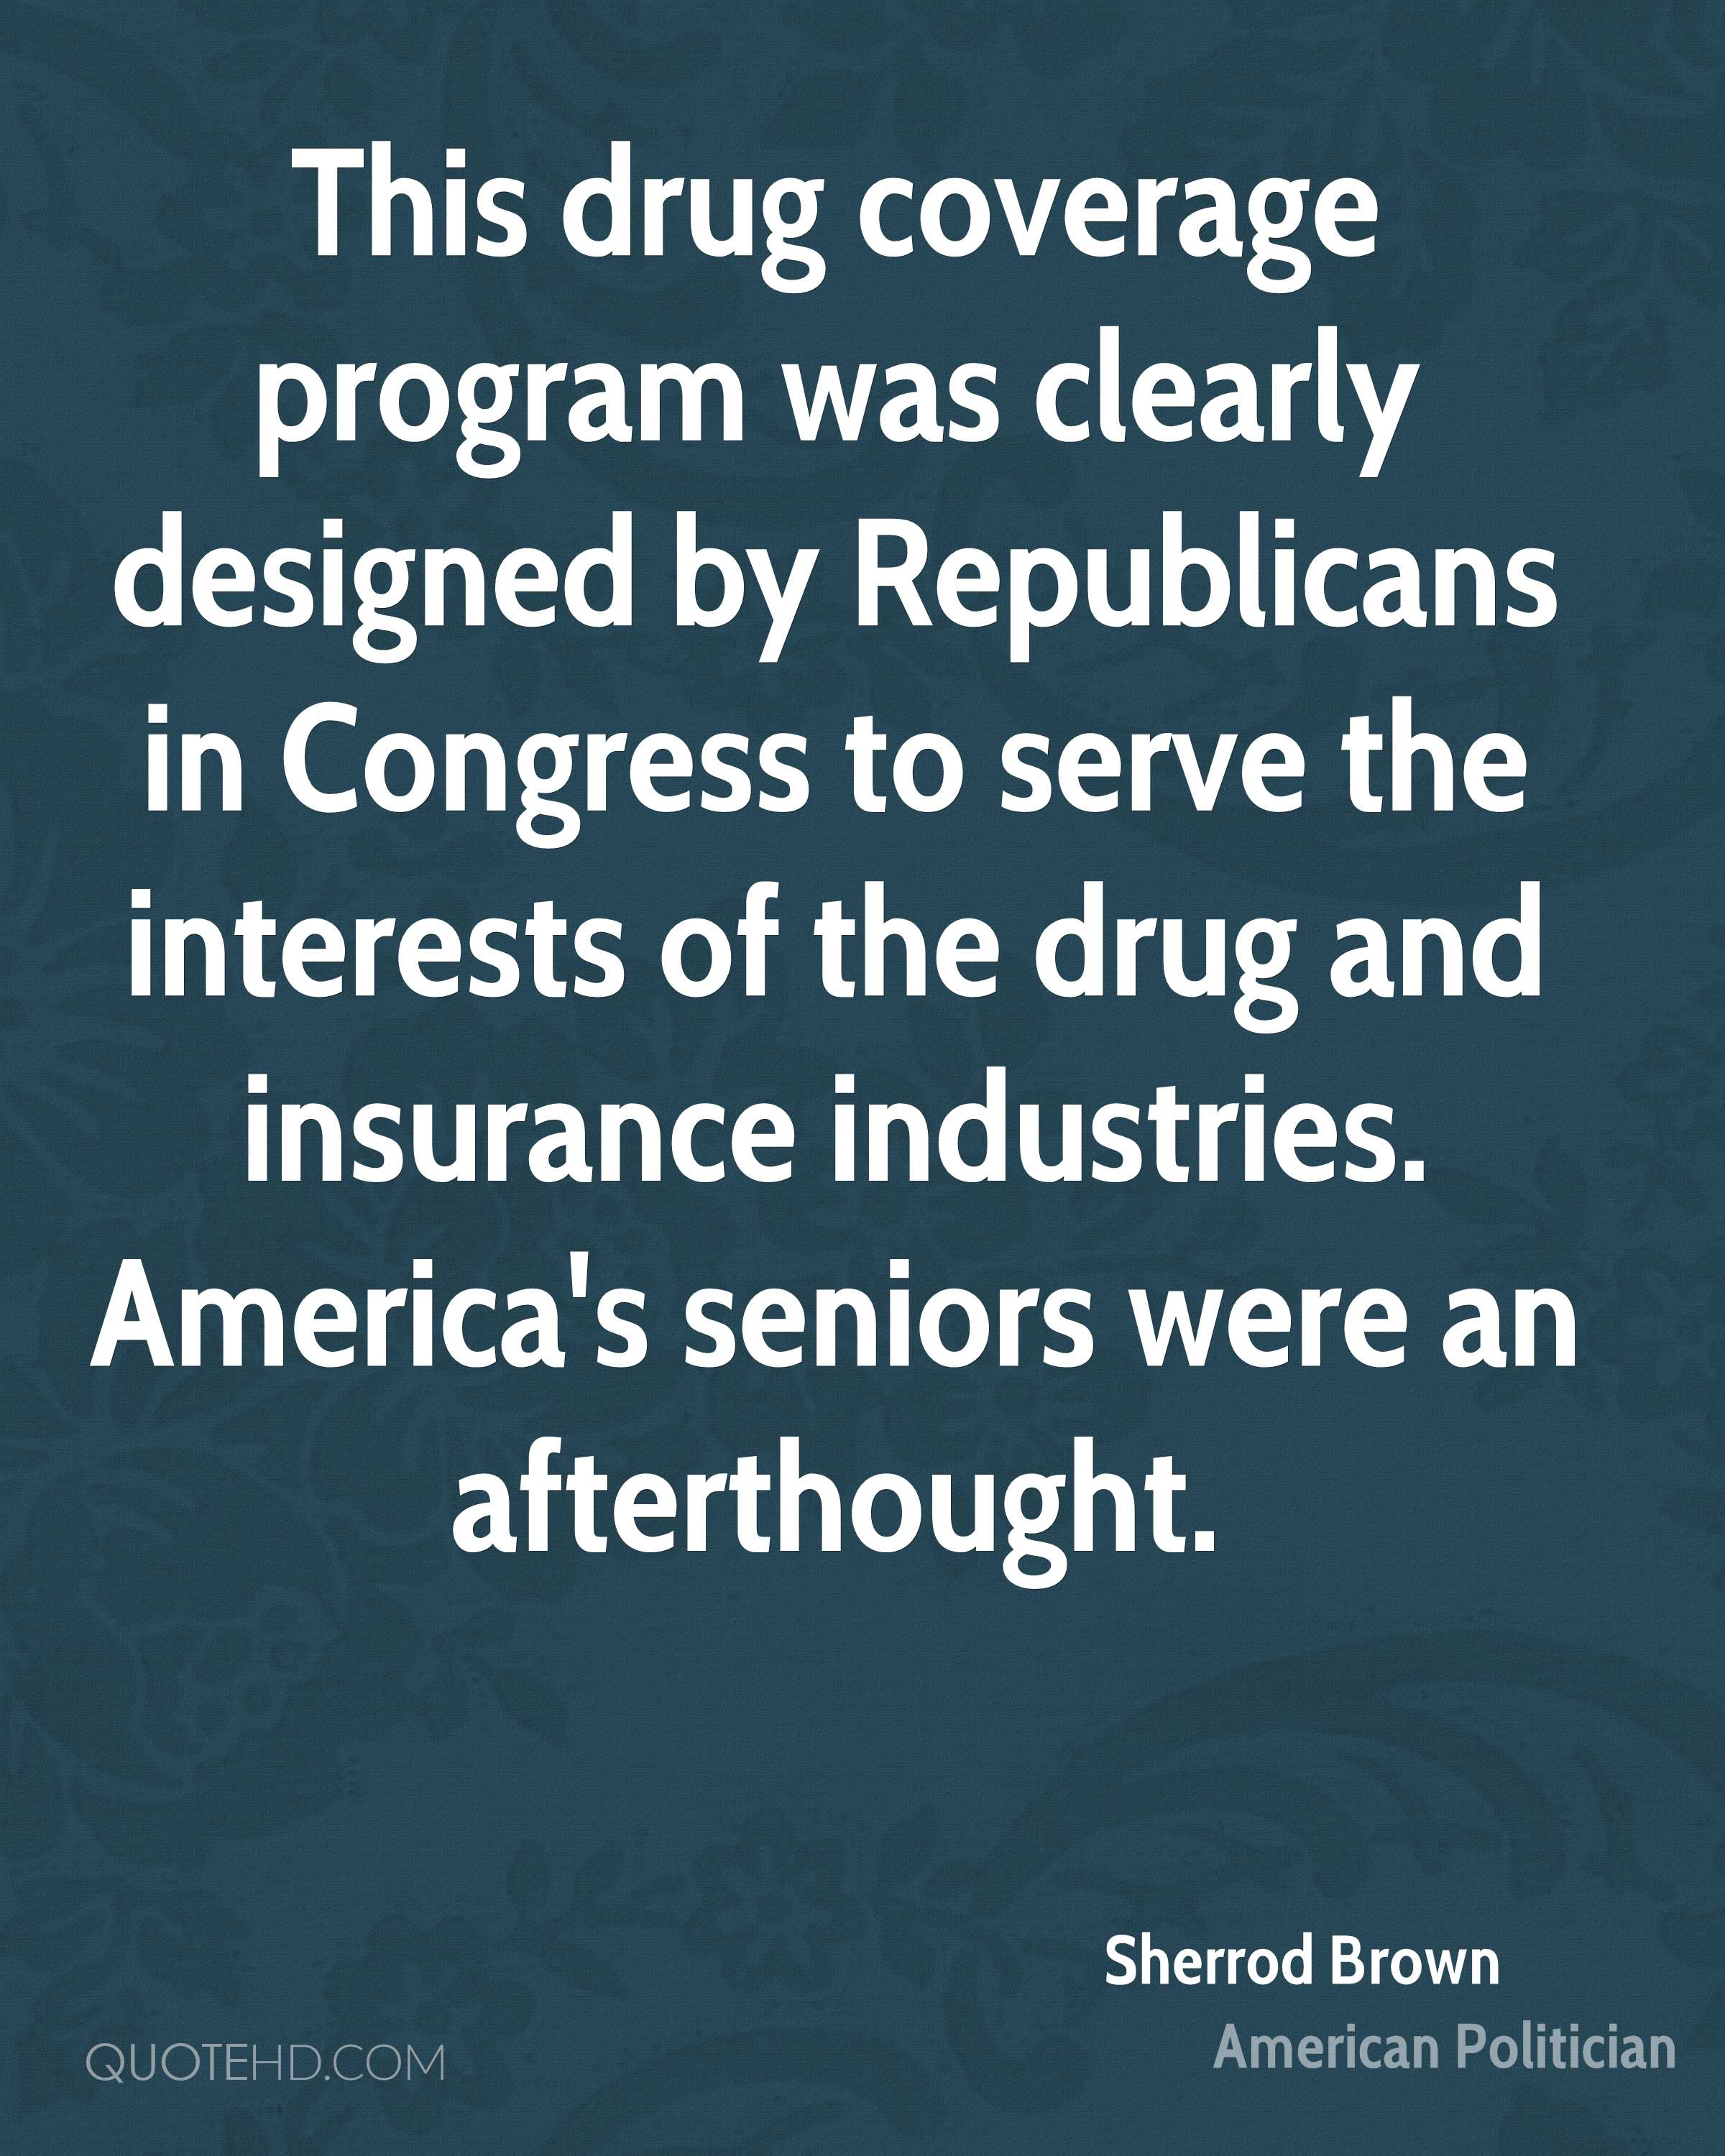 This drug coverage program was clearly designed by Republicans in Congress to serve the interests of the drug and insurance industries. America's seniors were an afterthought.